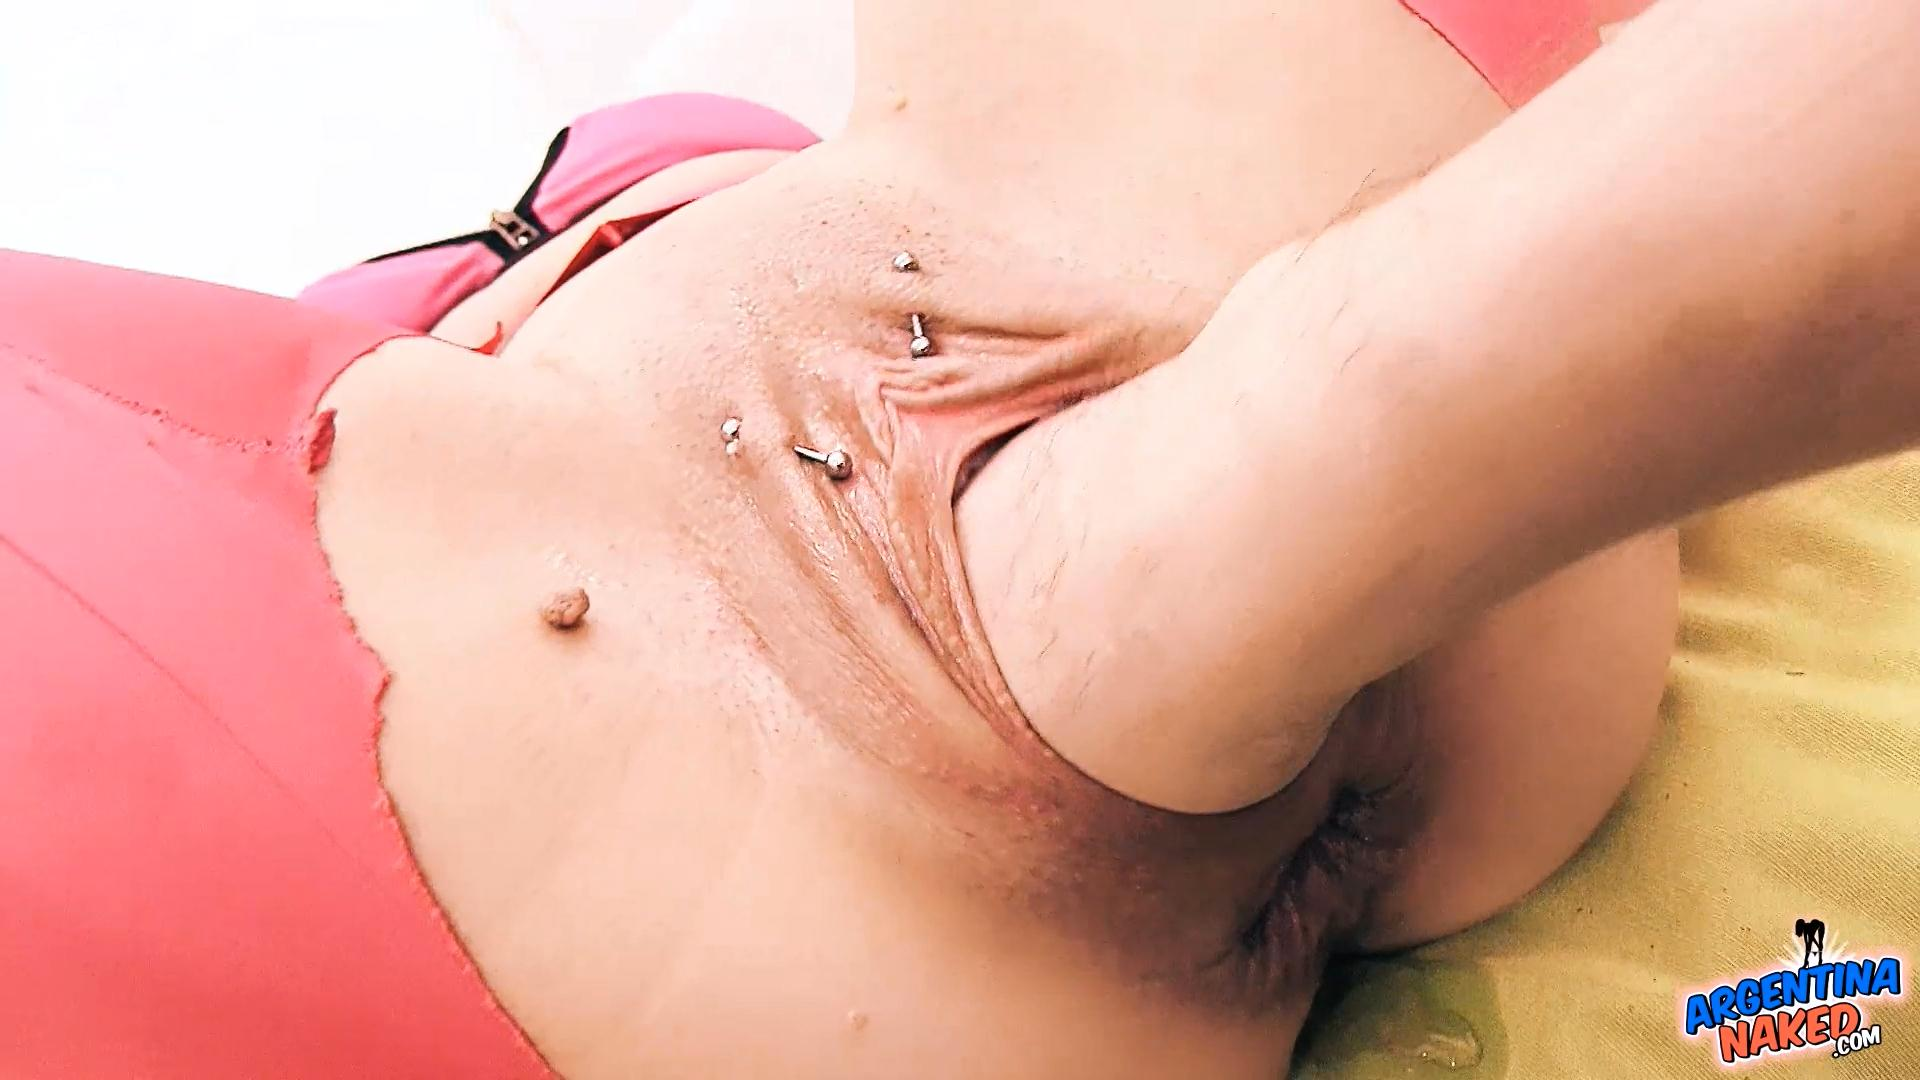 Anal destruction derby for sweety 1